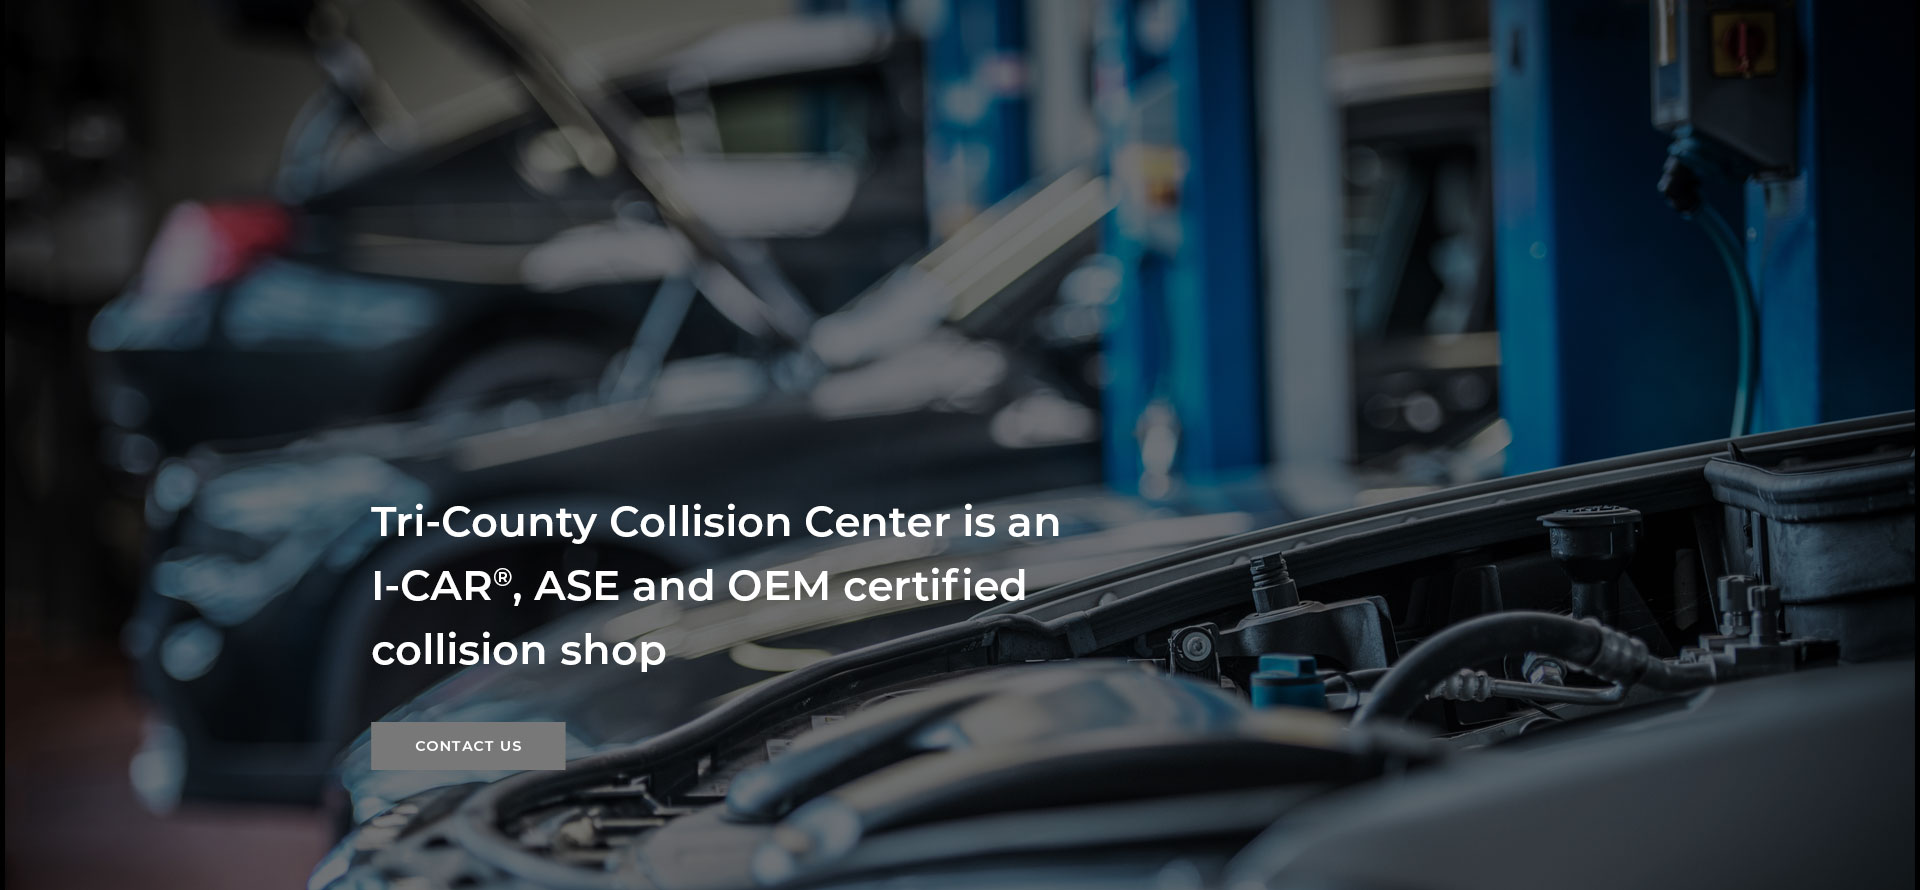 Tri-County Collision Center is an I-CAR, ASE and OEM certified collision shop